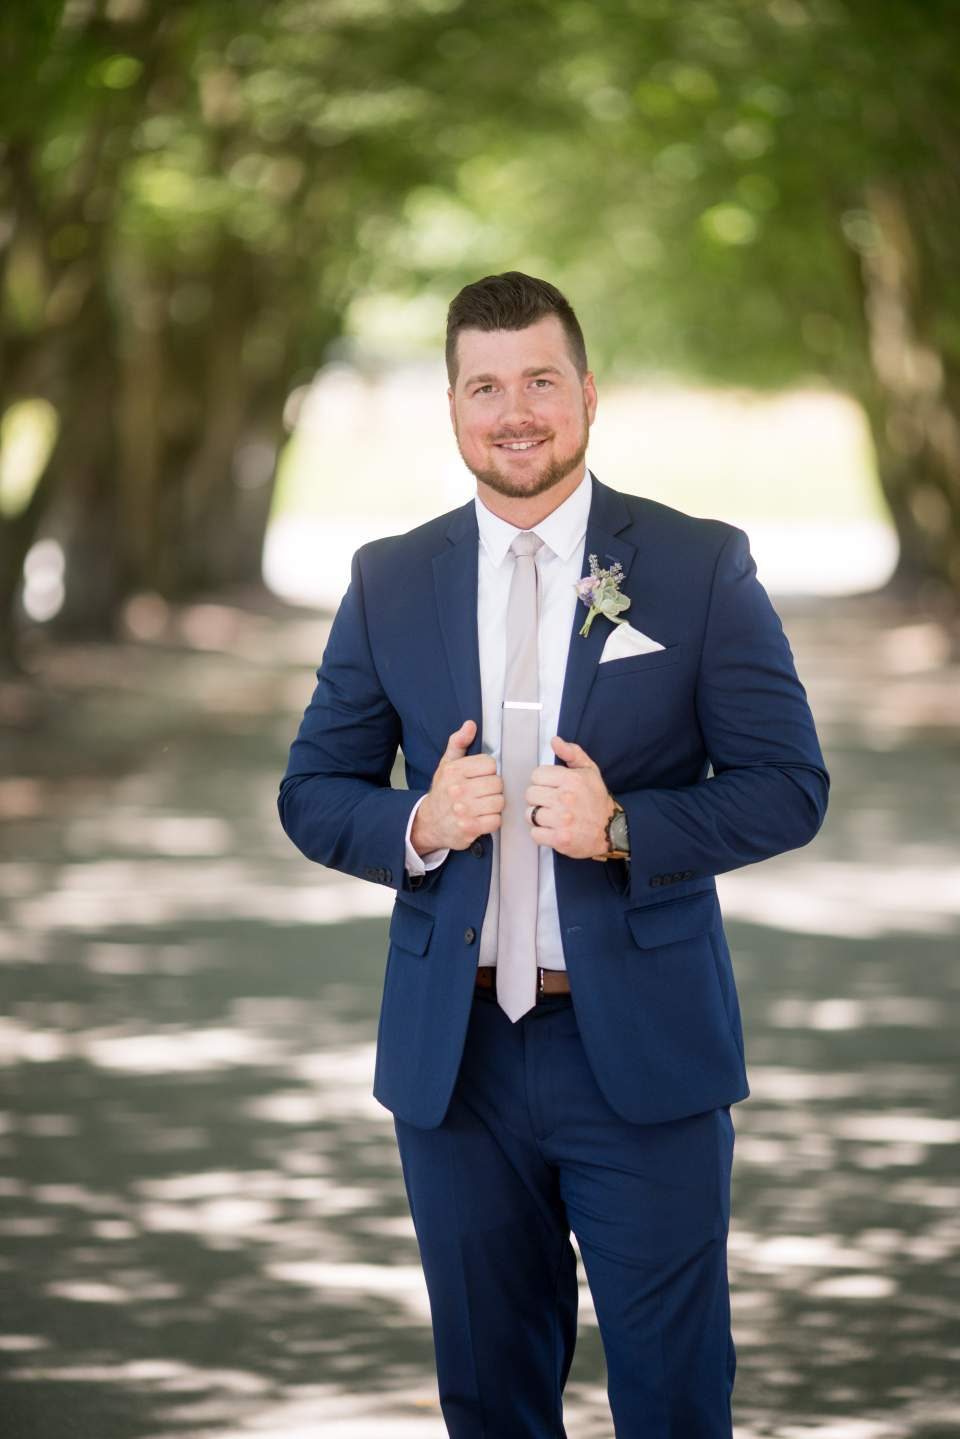 dapper portrait of groom